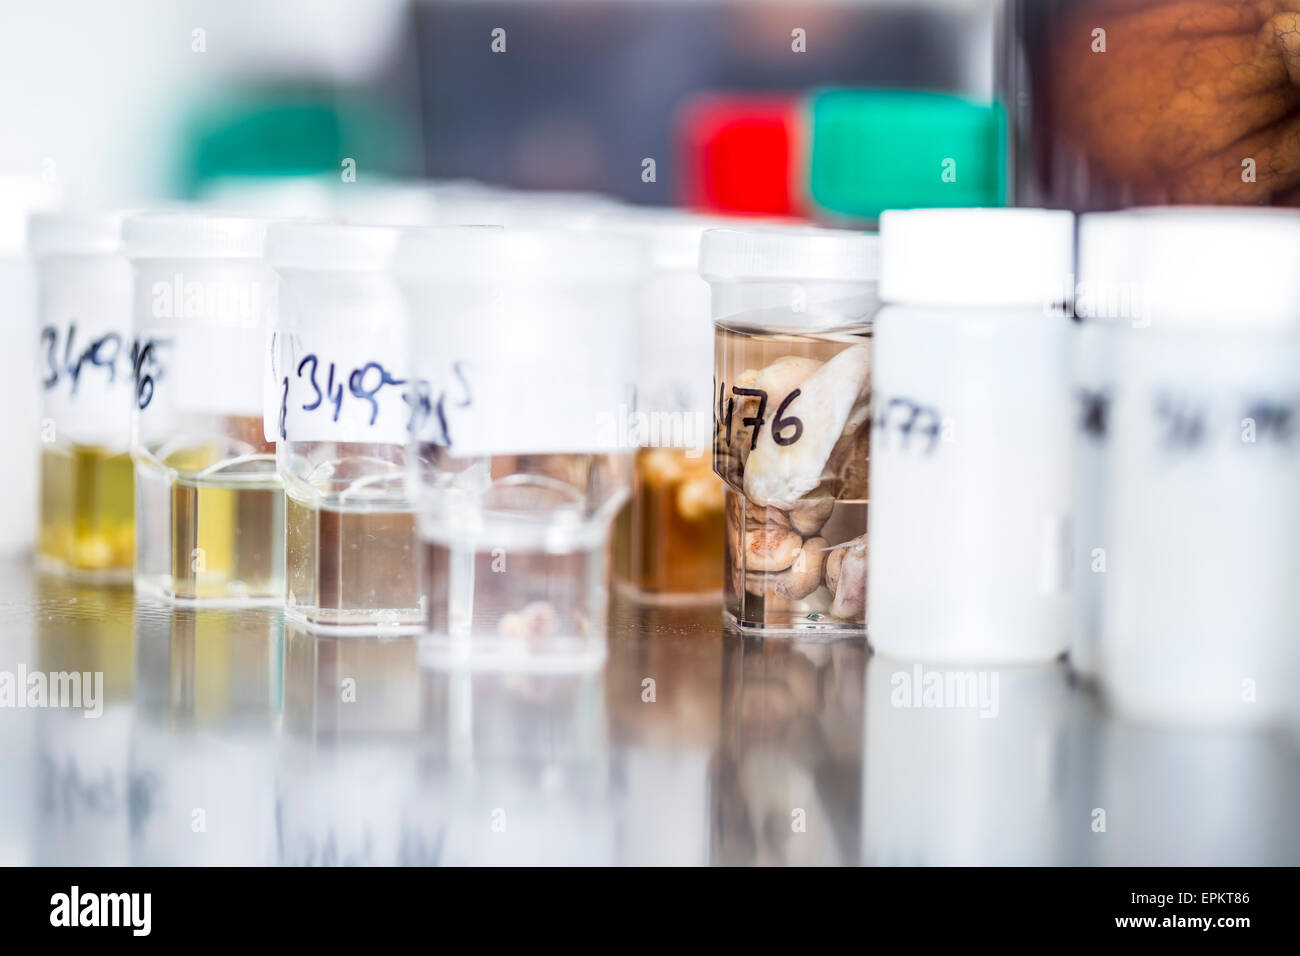 Tissue samples in clinical laboratory Stock Photo